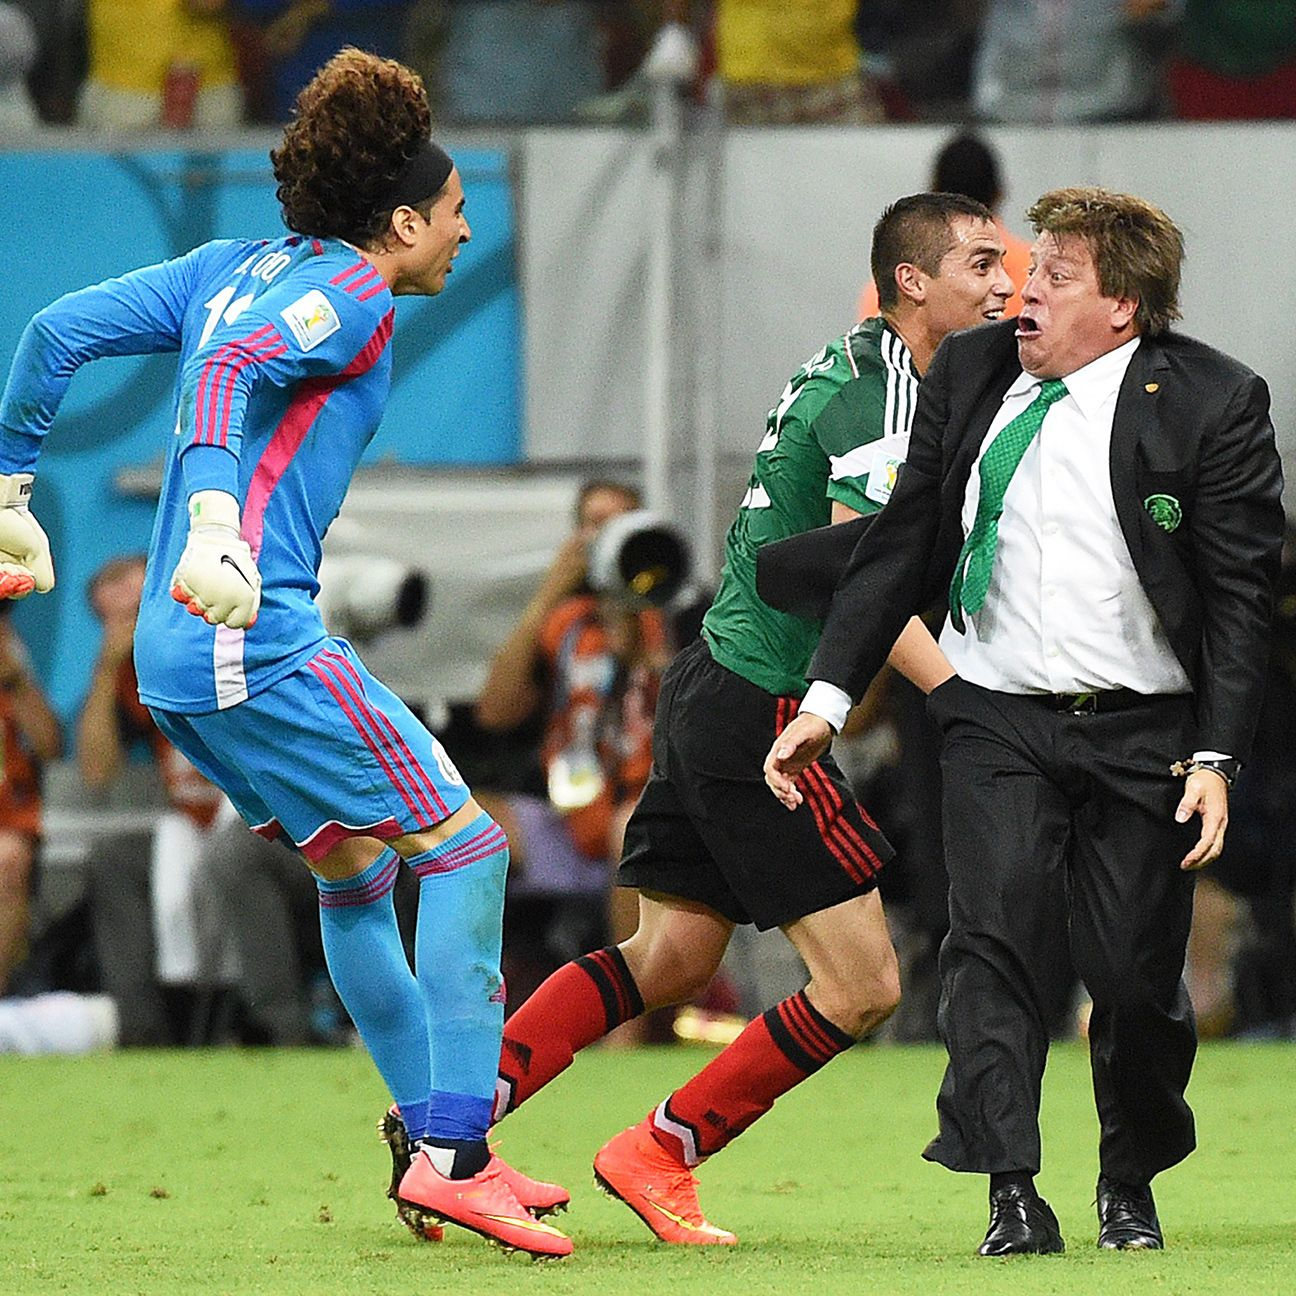 Malaga's decision to sit goalkeeper Guillermo Ochoa is a major nuisance for Mexico boss Miguel Herrera.